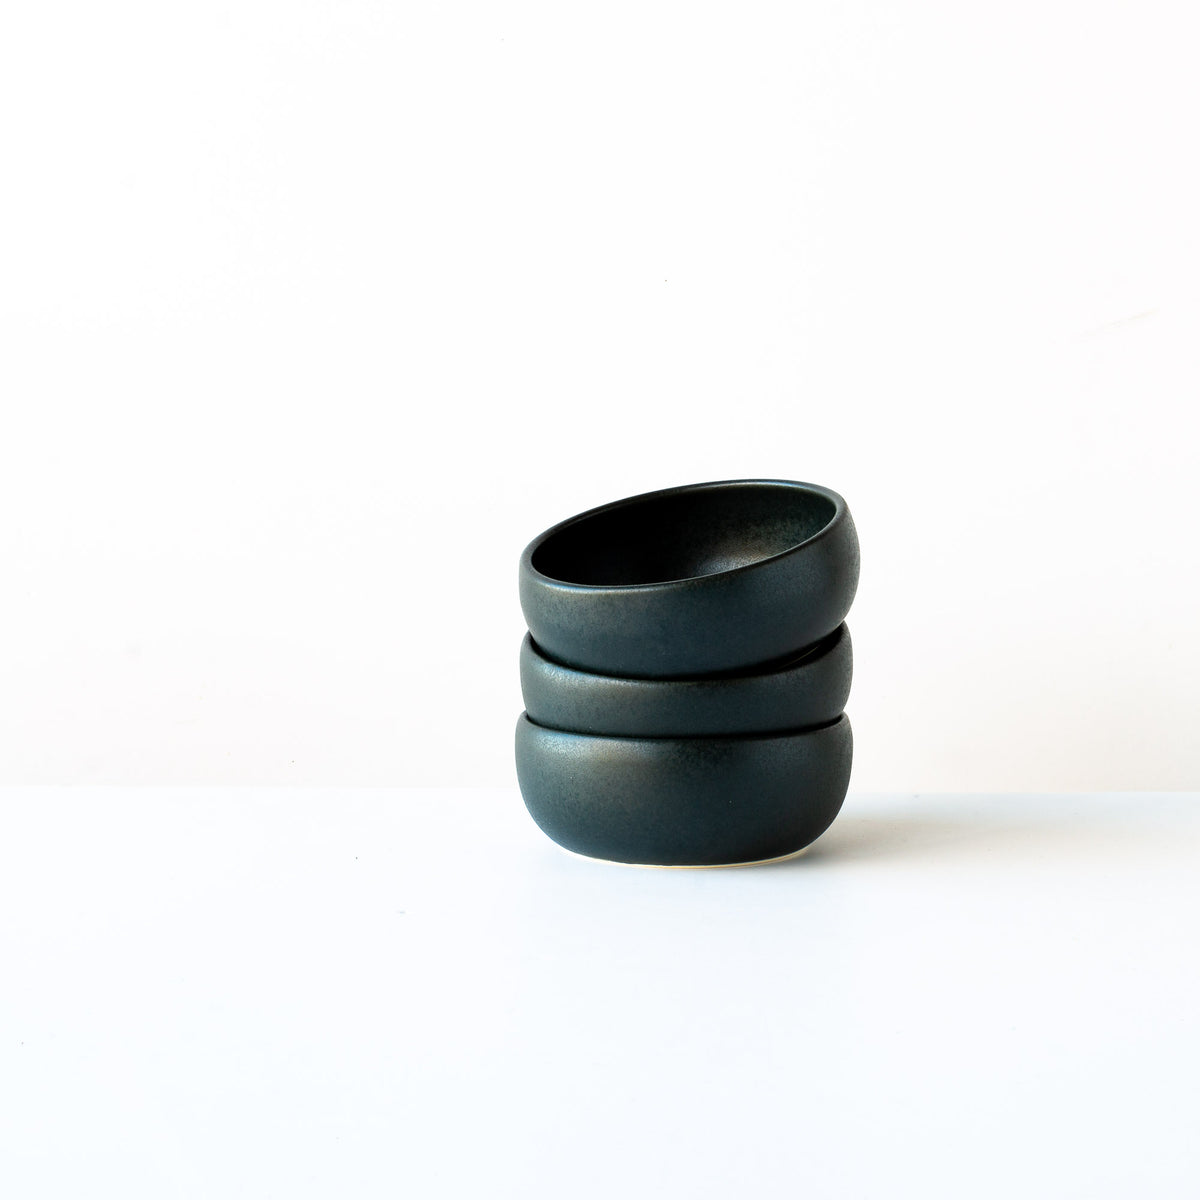 Three Black Satin Glazed Porcelain Small Flat Bowls - Sold by Chic & Basta